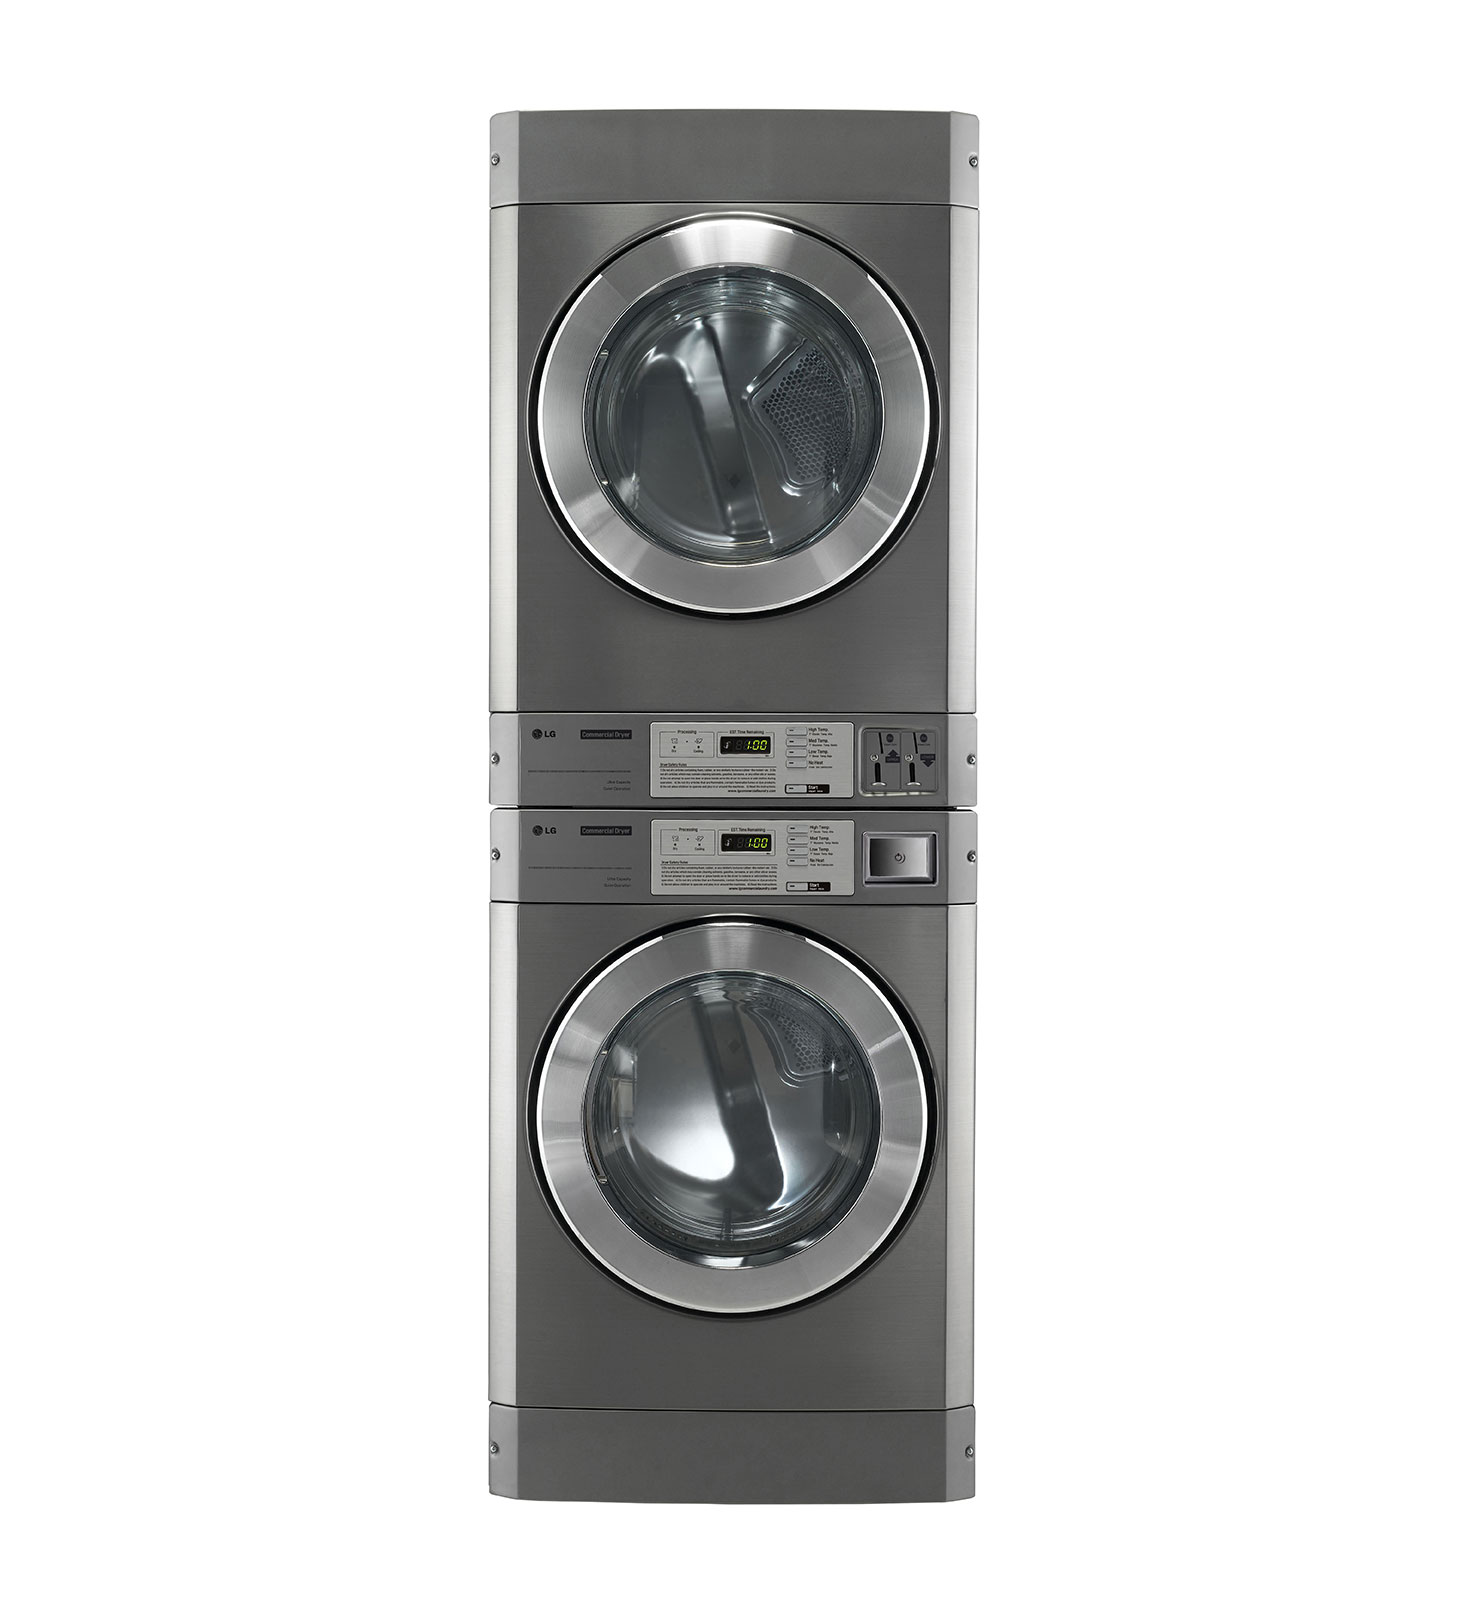 Lg Stacked Dryer Dryer Coin Operated Giant C Platinum